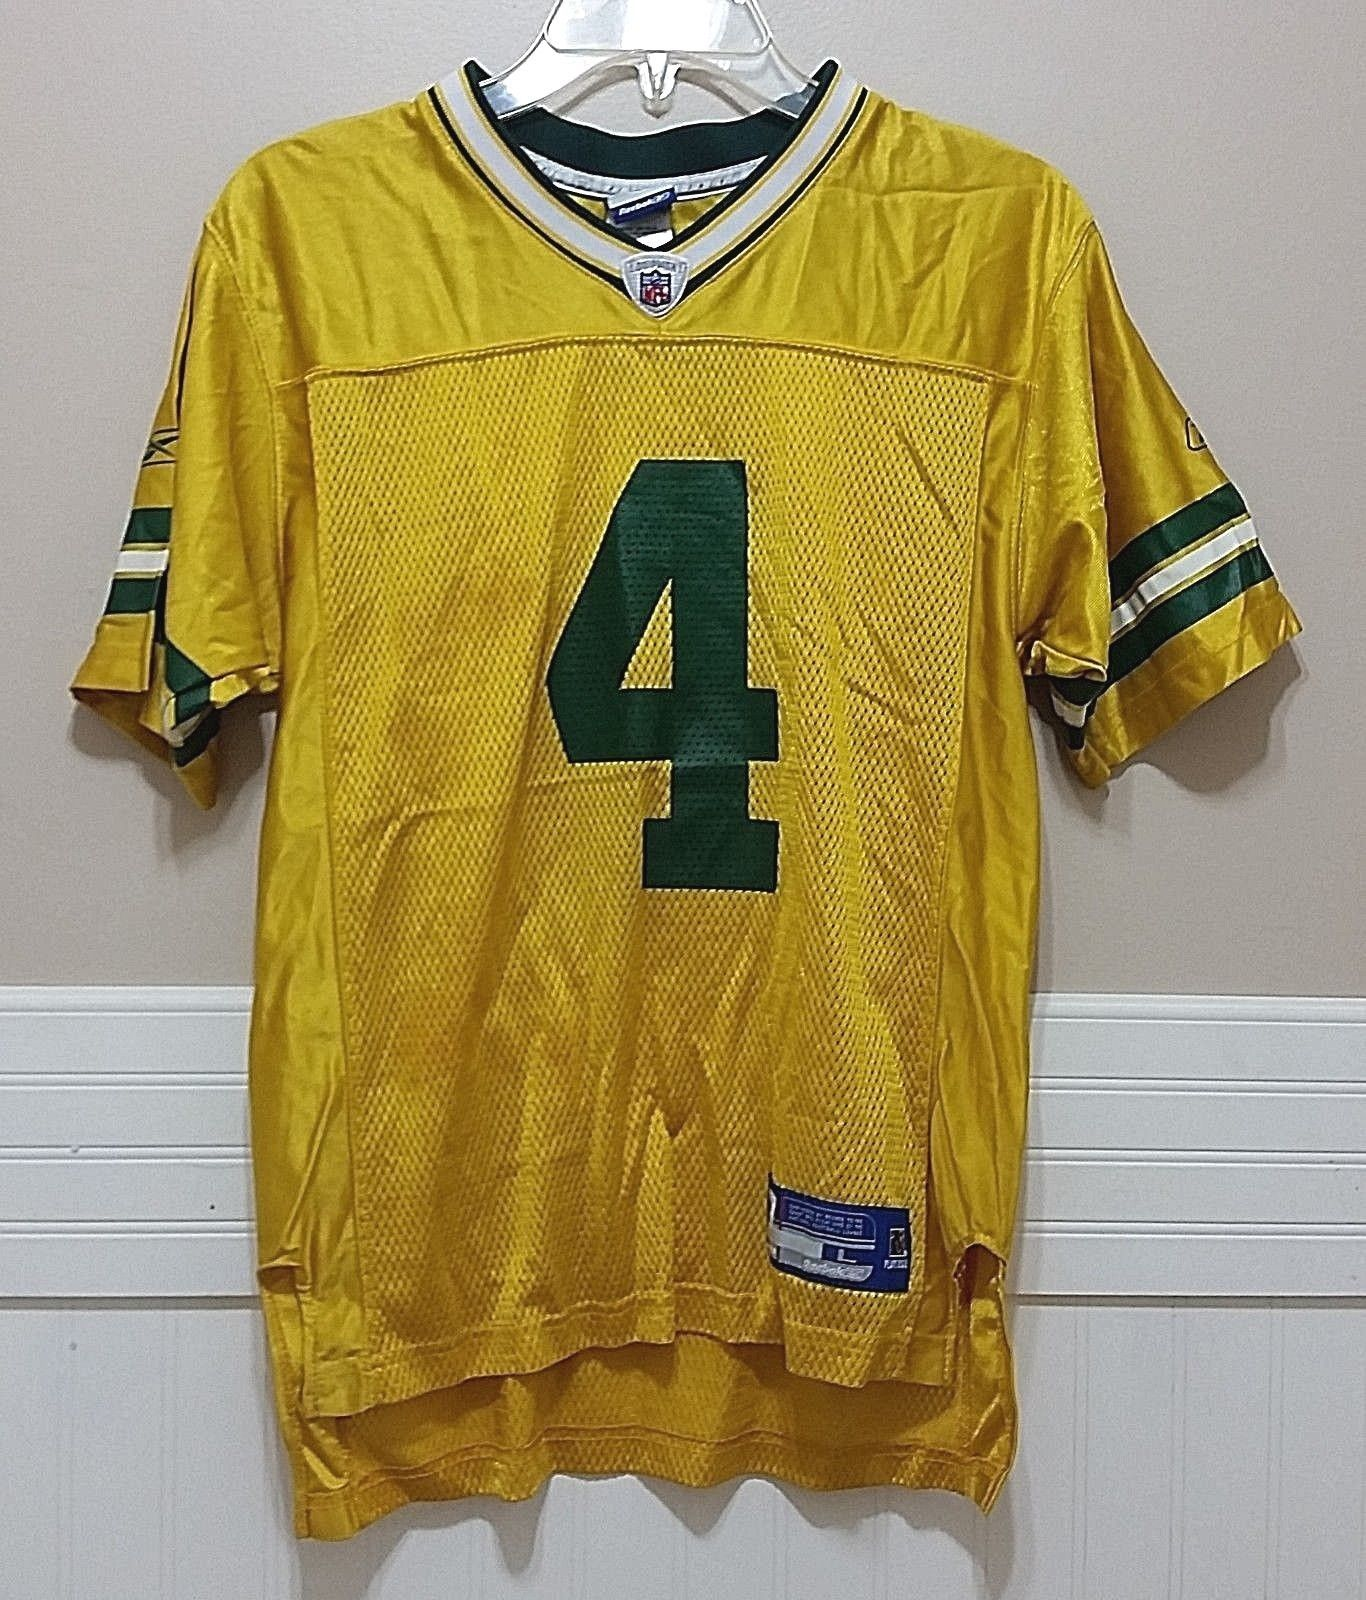 lowest price c8af6 85e10 Brett Favre #4 Jersey Reebok Green Bay and 28 similar items